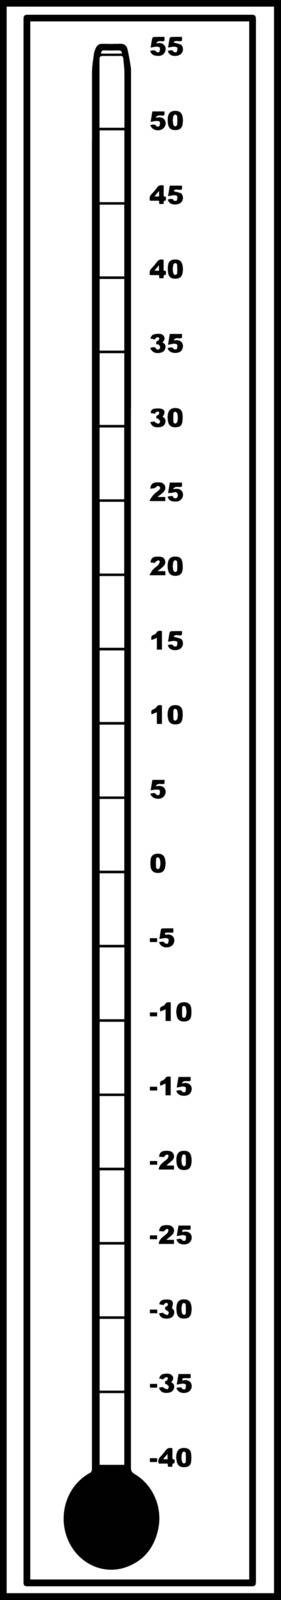 This image is for blank outdoor Celsius Centigrade thermometer, vintage line drawing or engraving illustration.